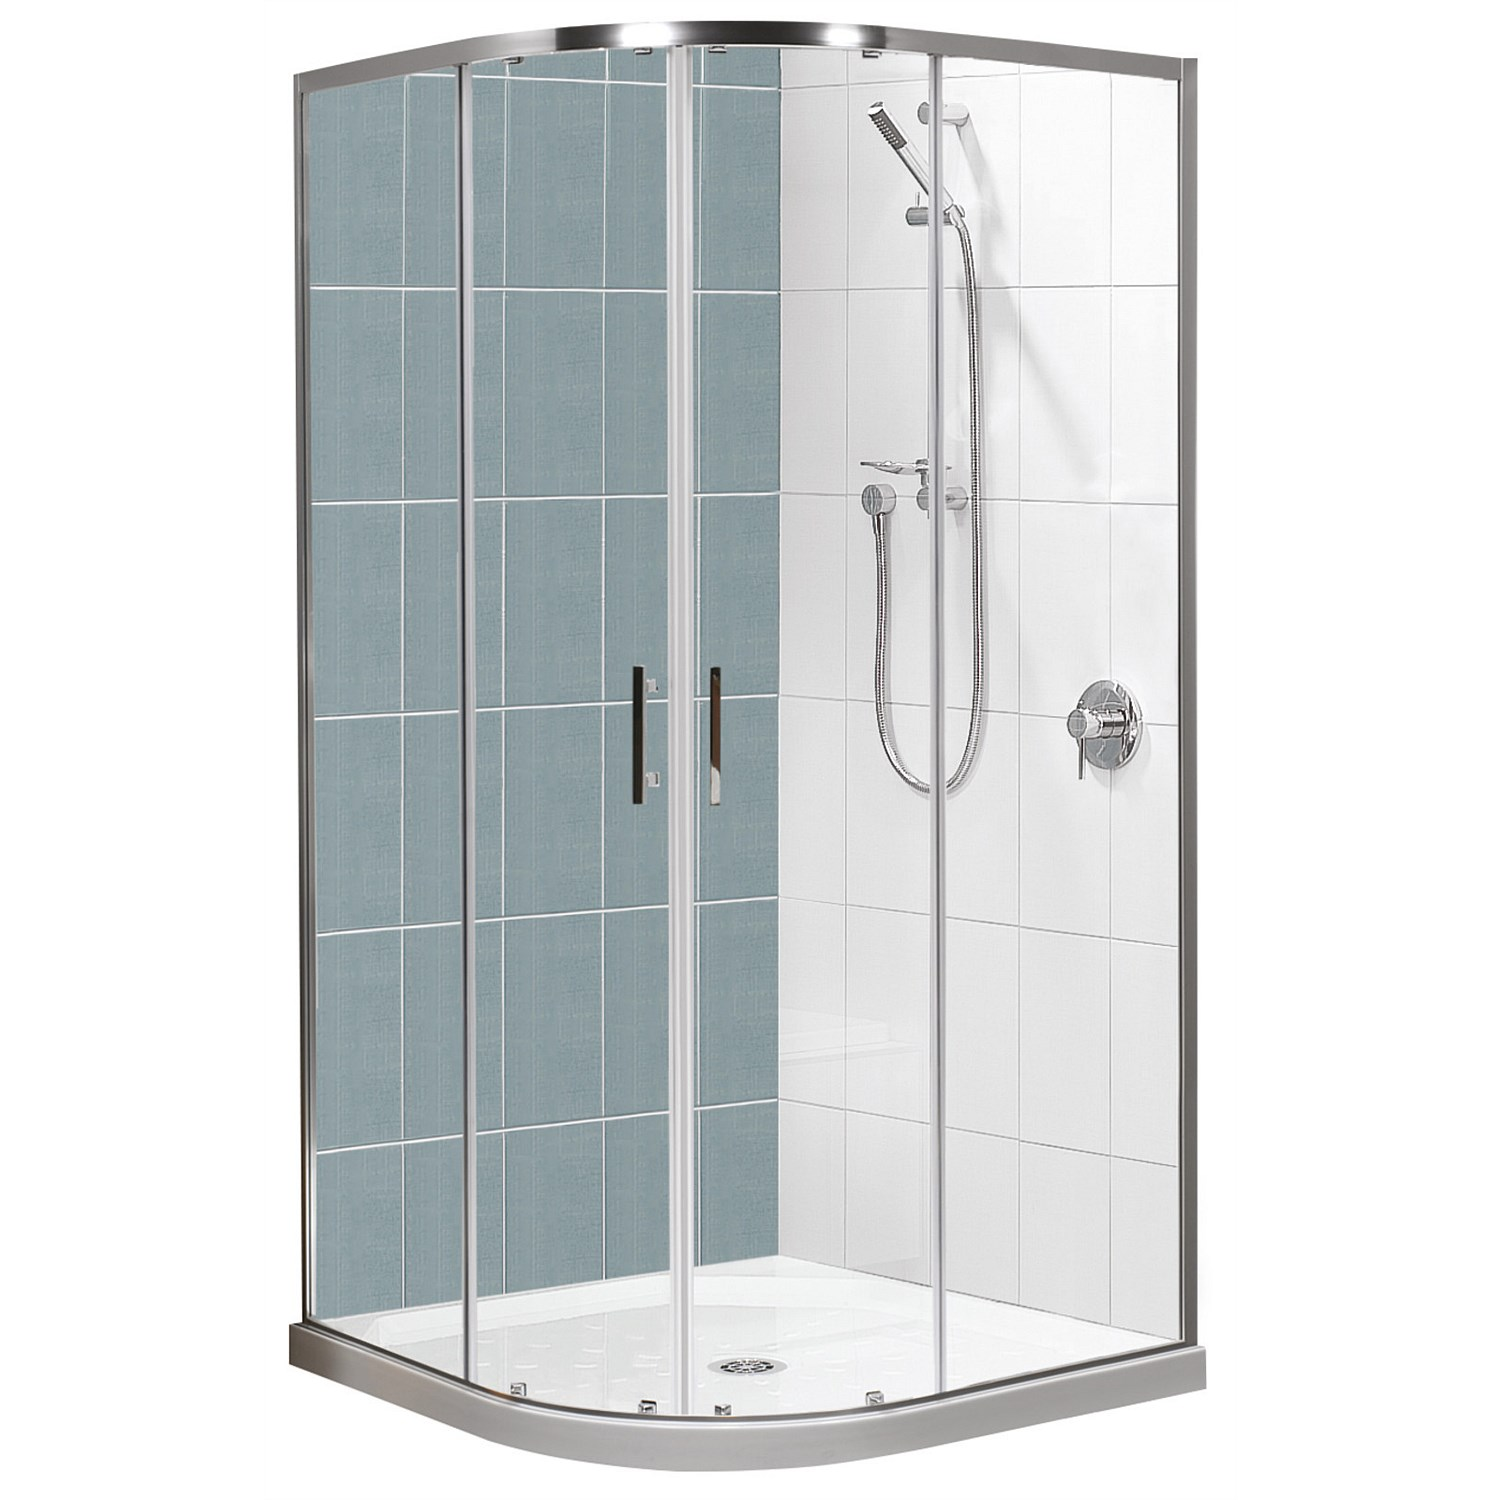 Showers | Plumbing World - Clearlite Cezanne 900mm Round Tile Shower